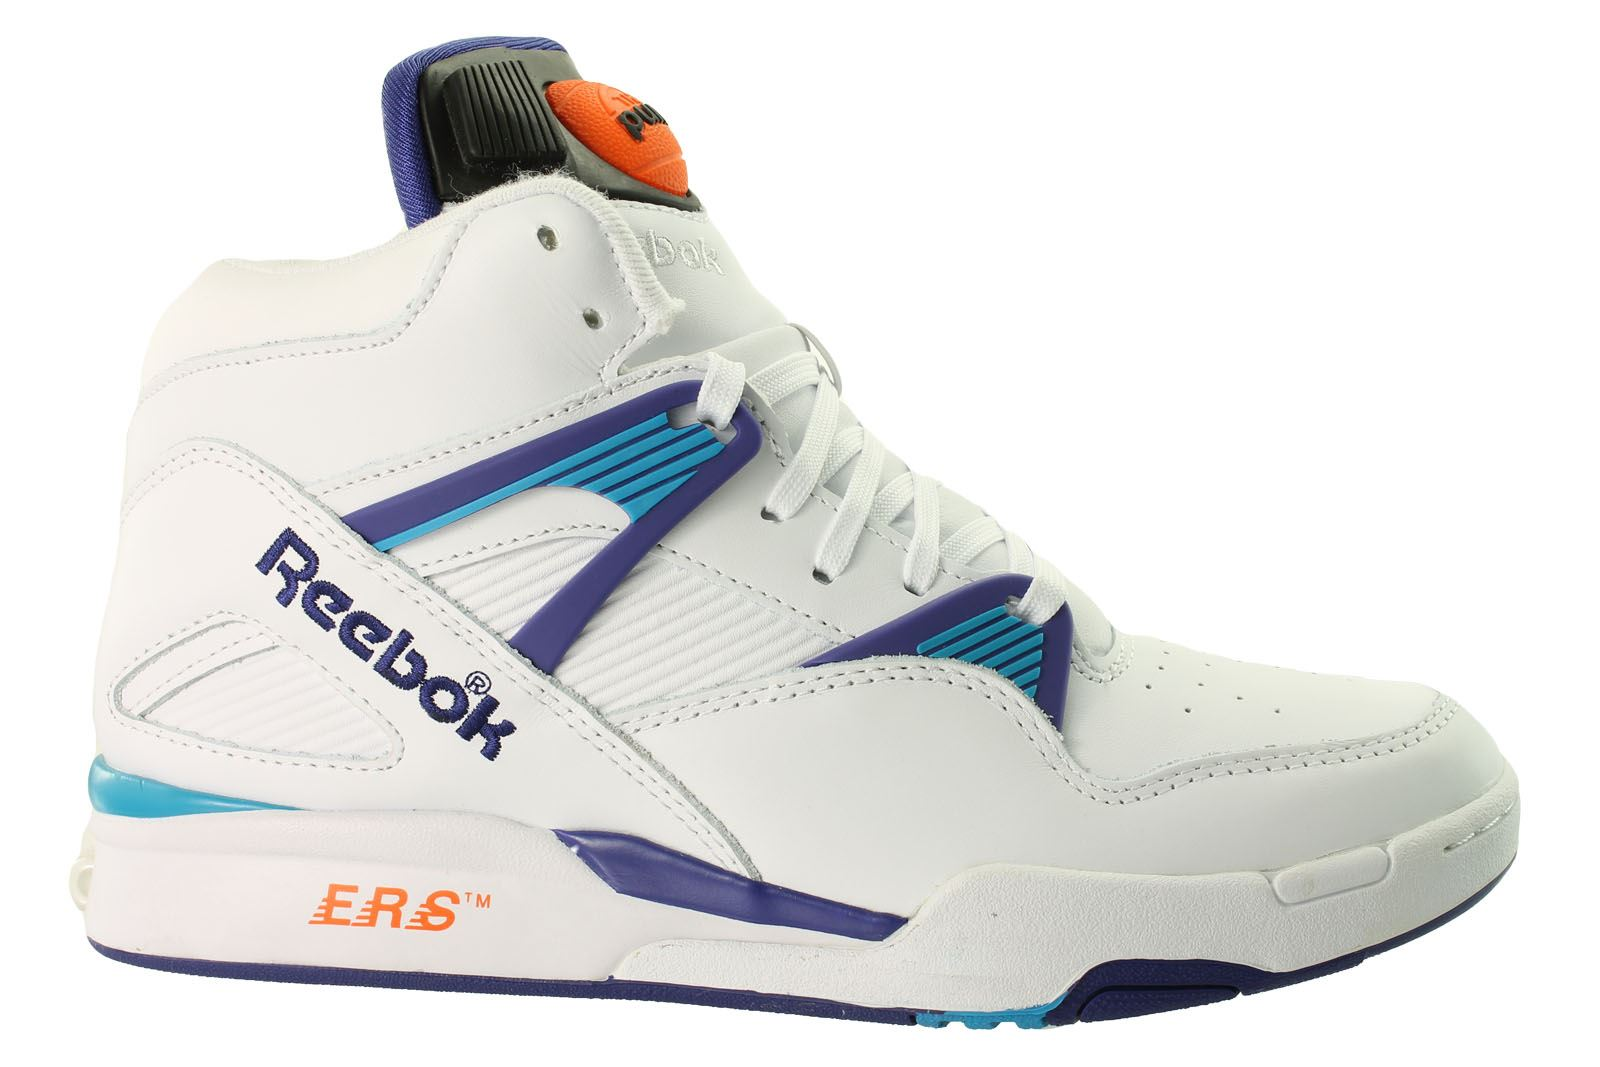 mens reebok pump boots shaq attaq omni lite cordura twilight trainers limited ed ebay. Black Bedroom Furniture Sets. Home Design Ideas